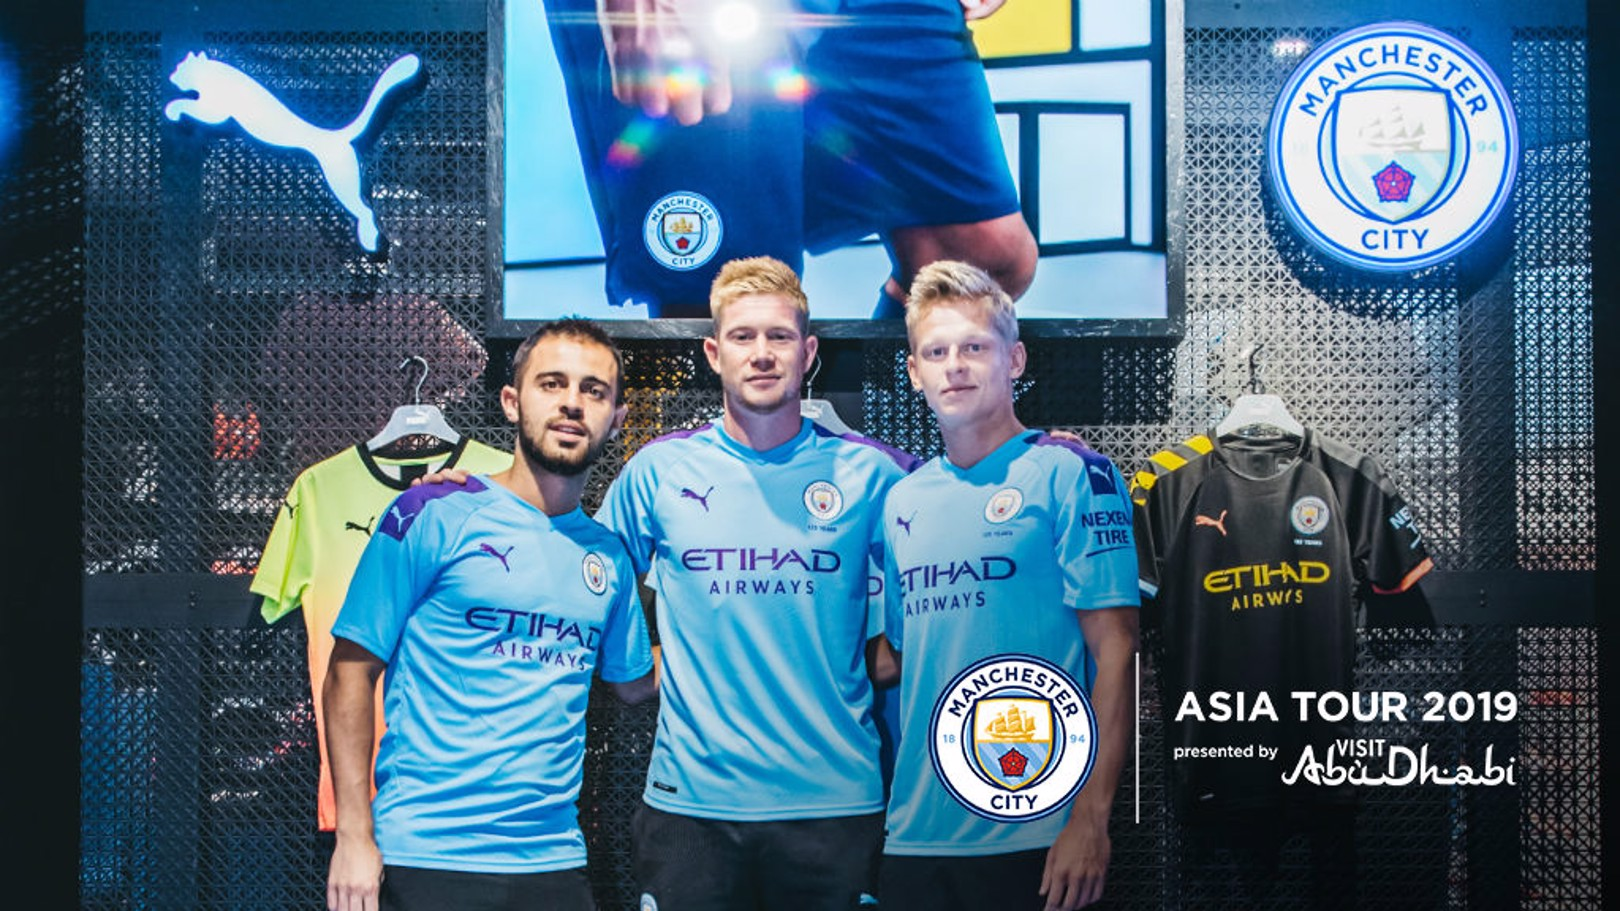 FAN REACTION: Bernardo Silva and Kevin De Bruyne have spoken about their delight about the reaction from fans in China